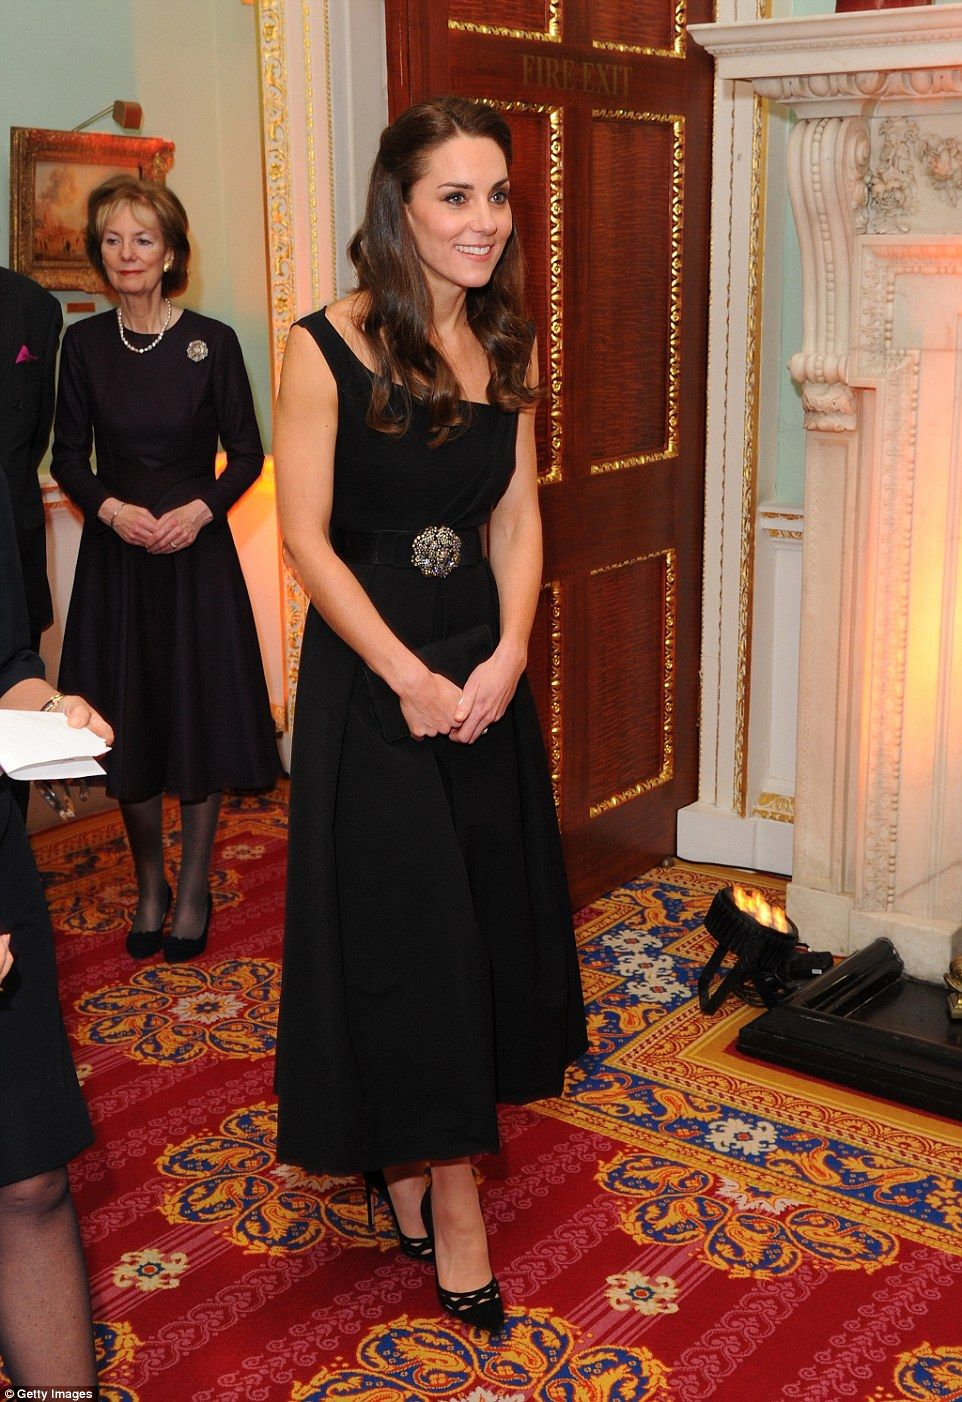 The Duchess Of Cambridge Wears British Label Preen To Present Awards Kate Middleton Dress Kate Middleton Style Kate Middleton Outfits